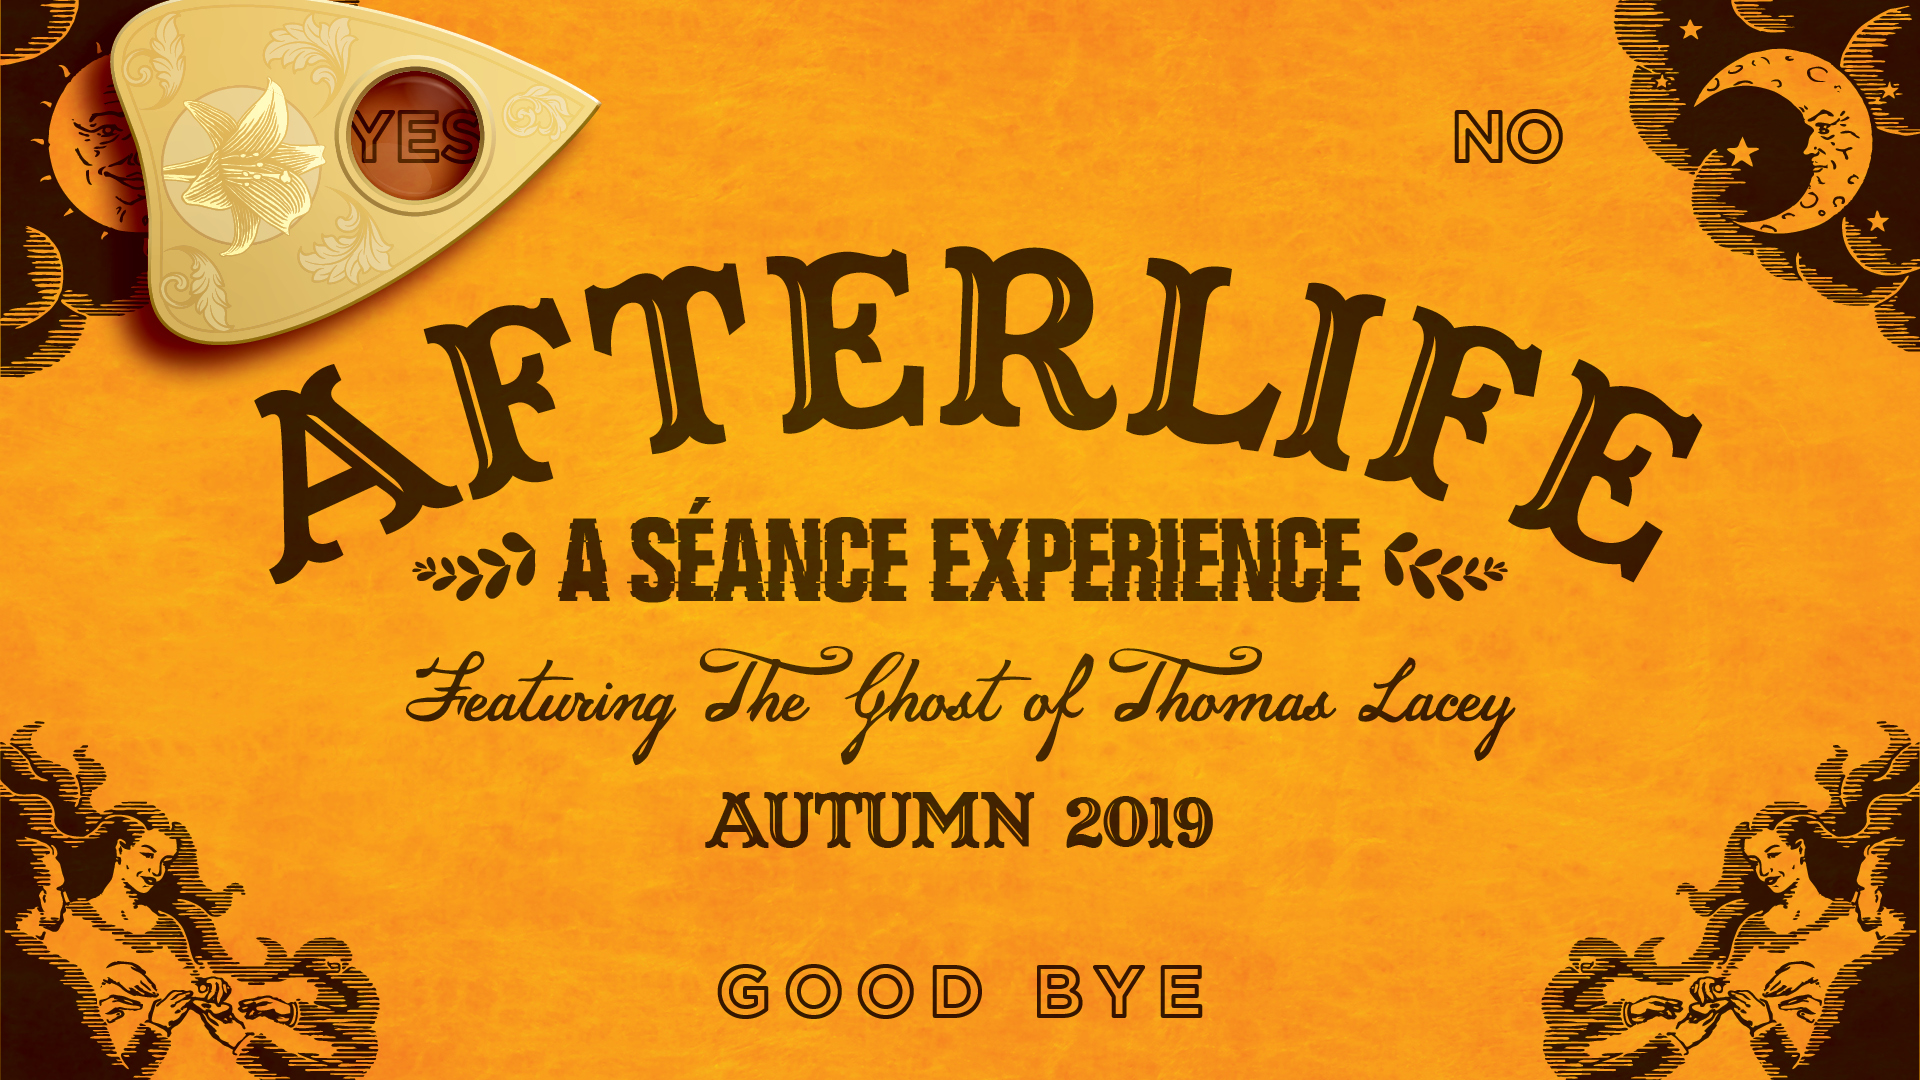 AFTERLIFE: a seance experience